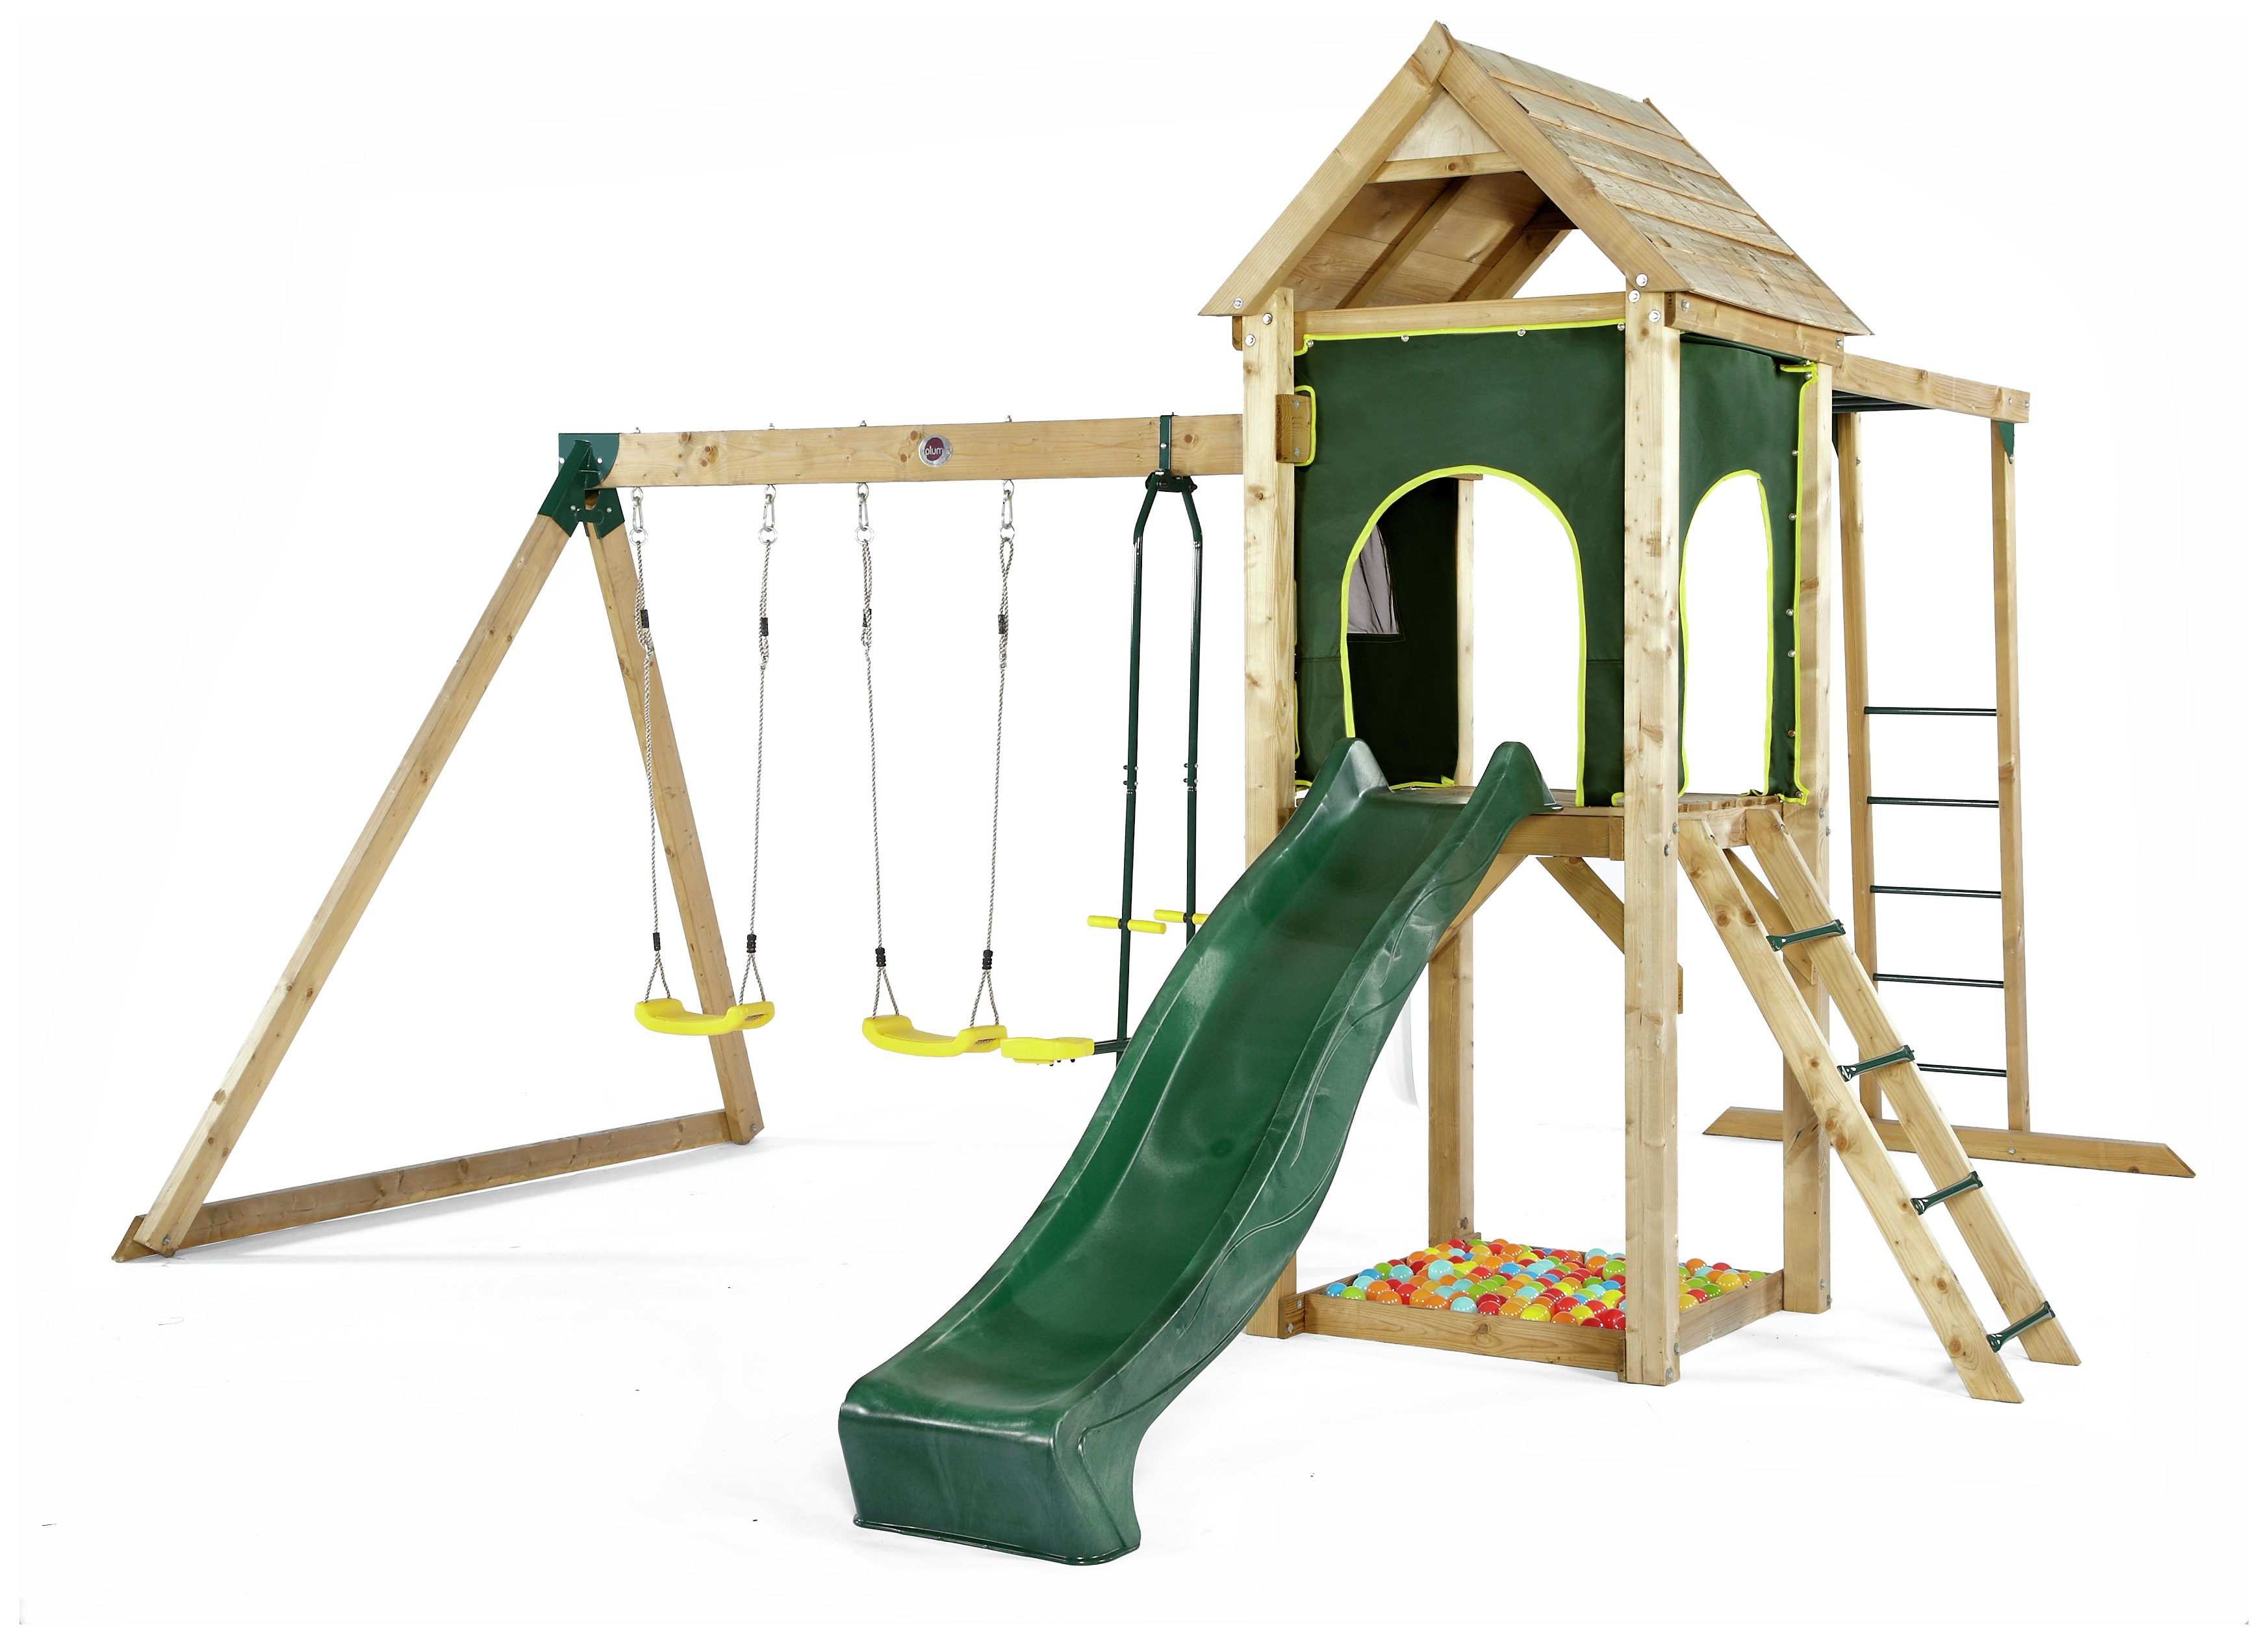 Climbing Frame deals - compare prices for Climbing Frames